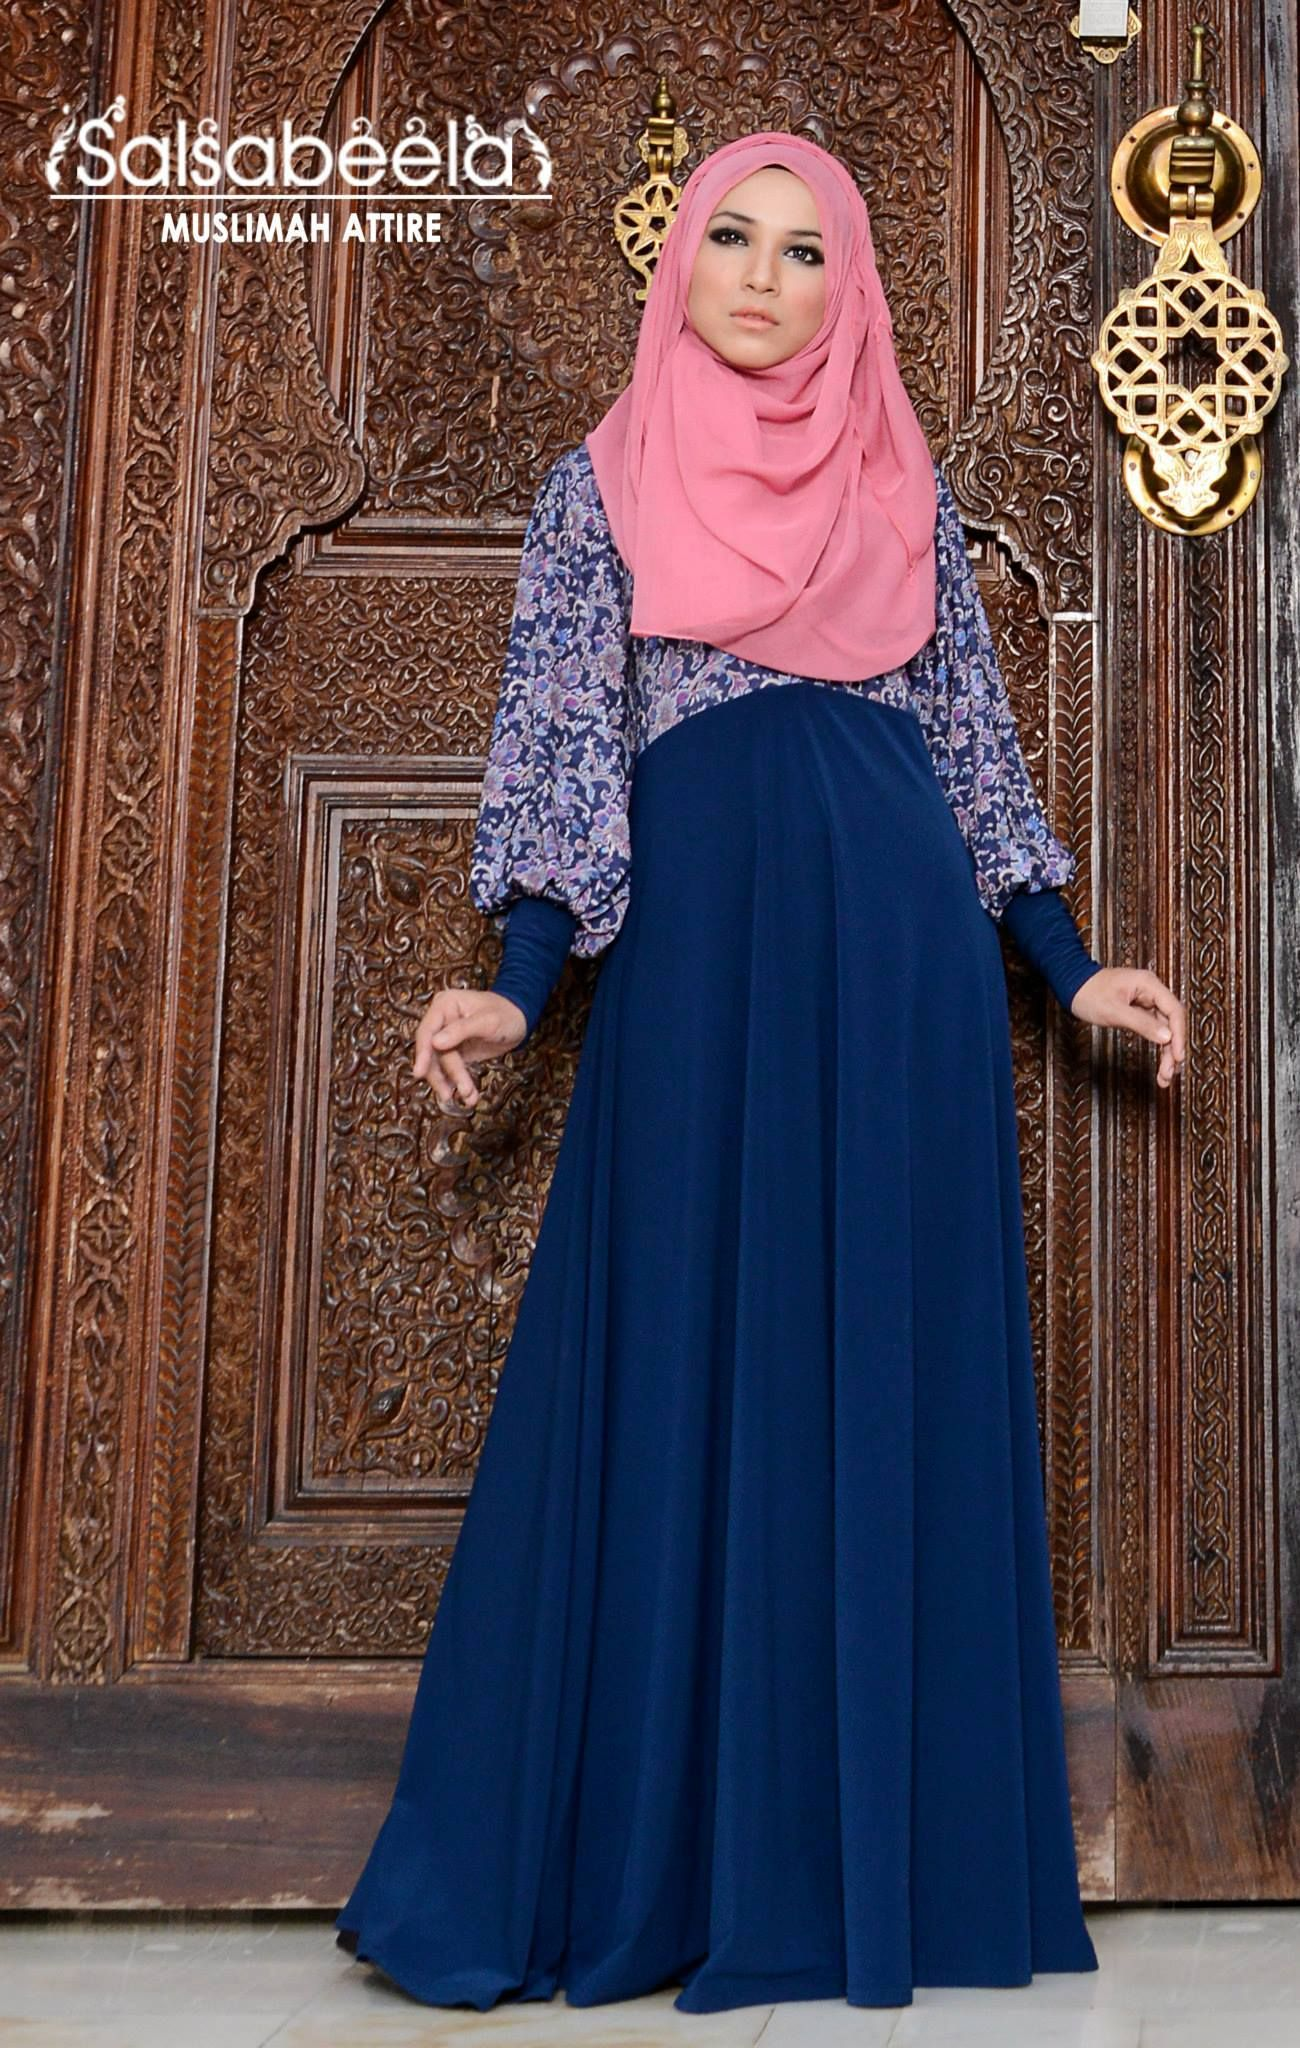 Muslimah Dark Blue Floral Dress Hijabi ️ Princess